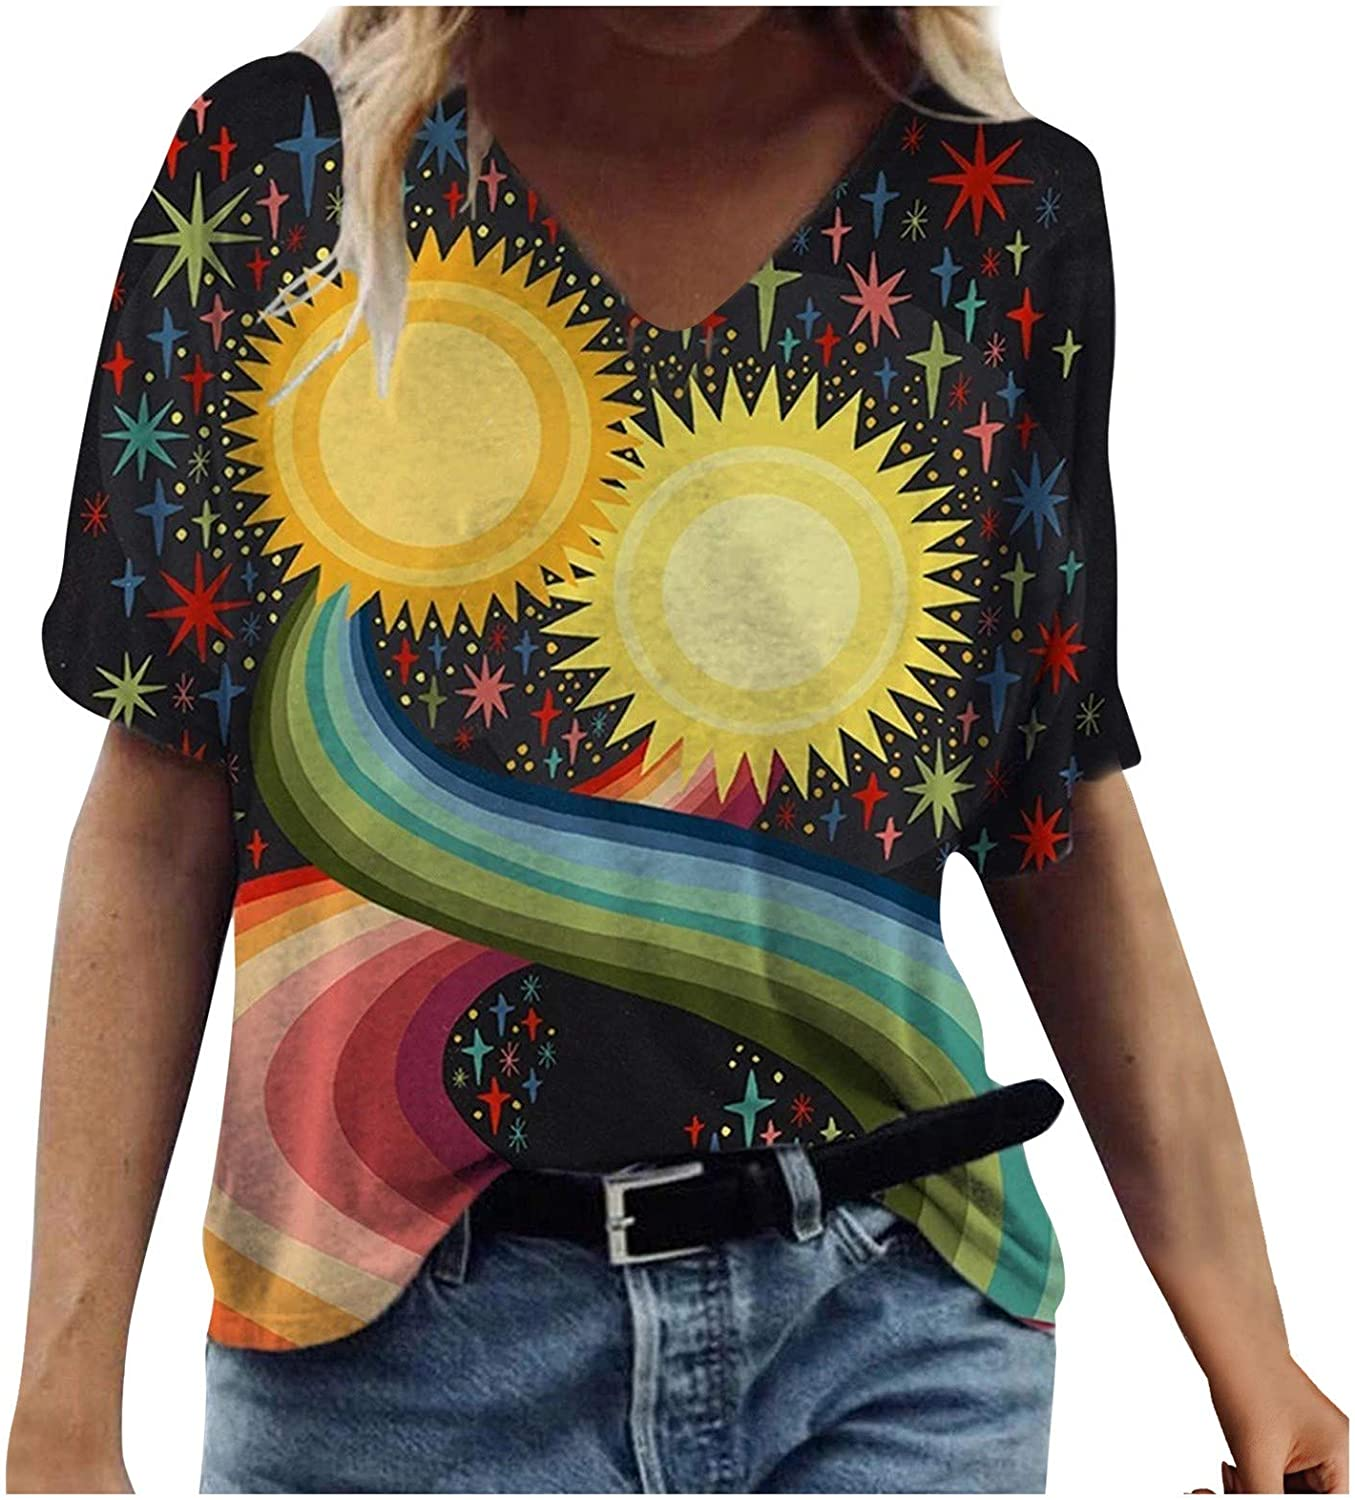 Max 53% OFF Animals Patterned Tops for Womens V Short Sleeve 70% OFF Outlet Pullover T Neck